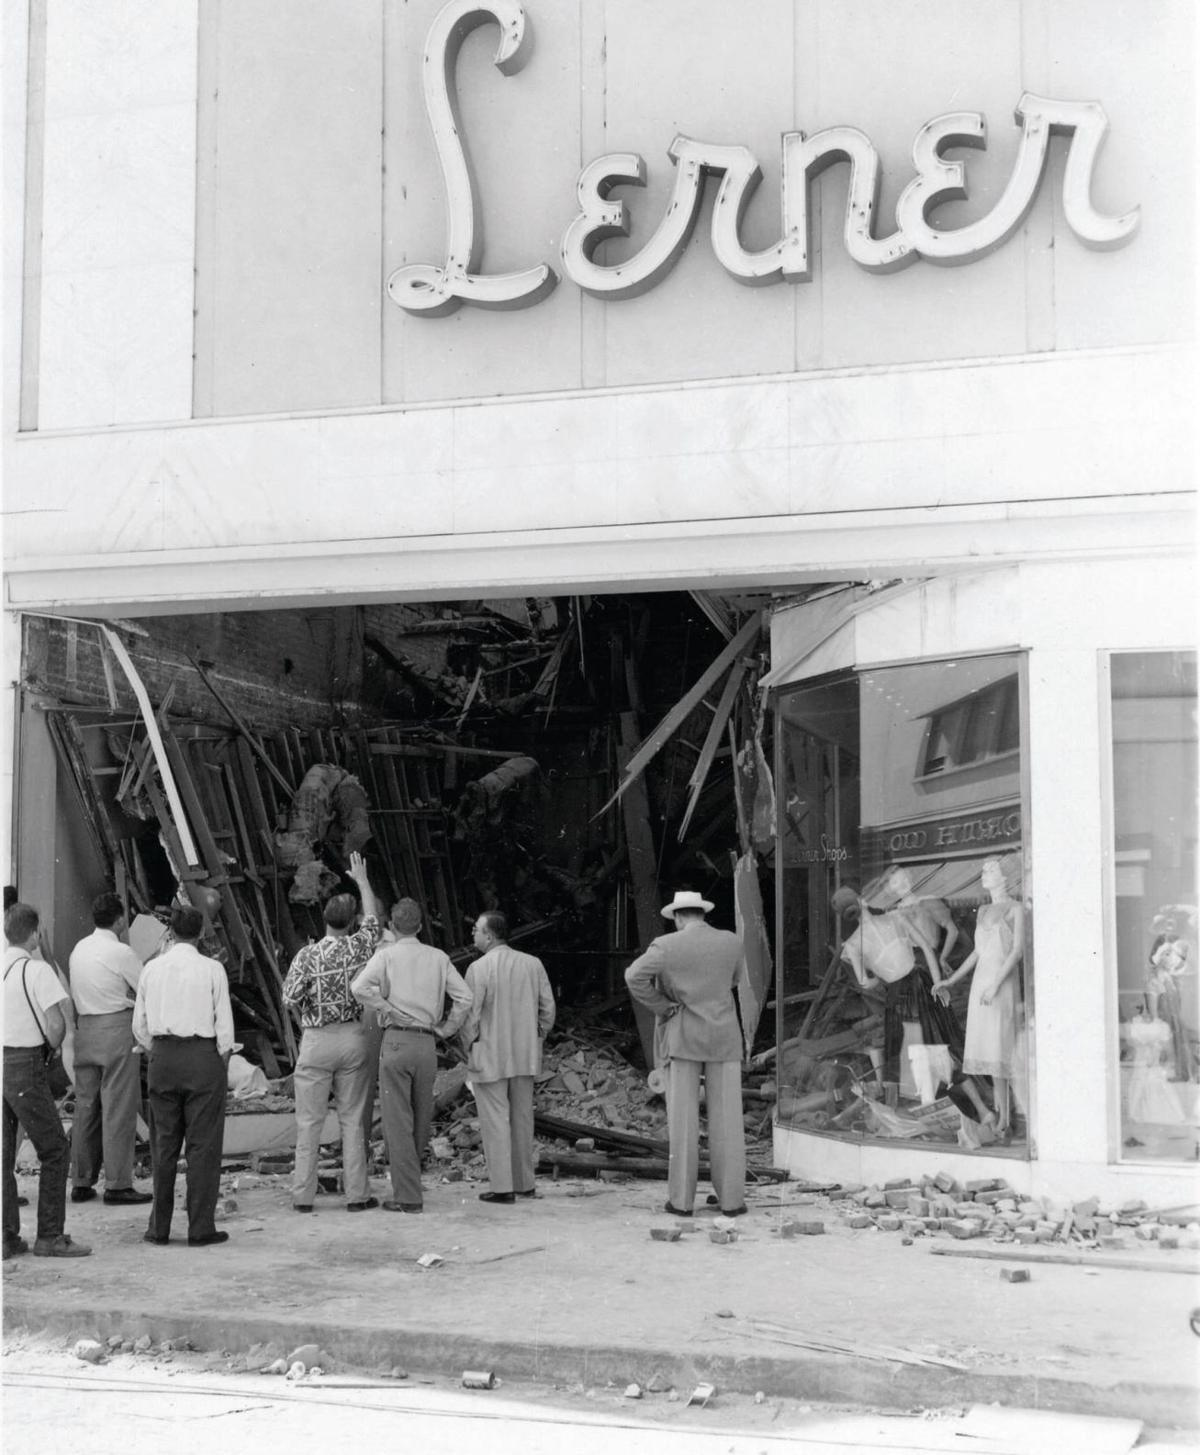 Sixty five years later 1952 earthquake memories still vivid